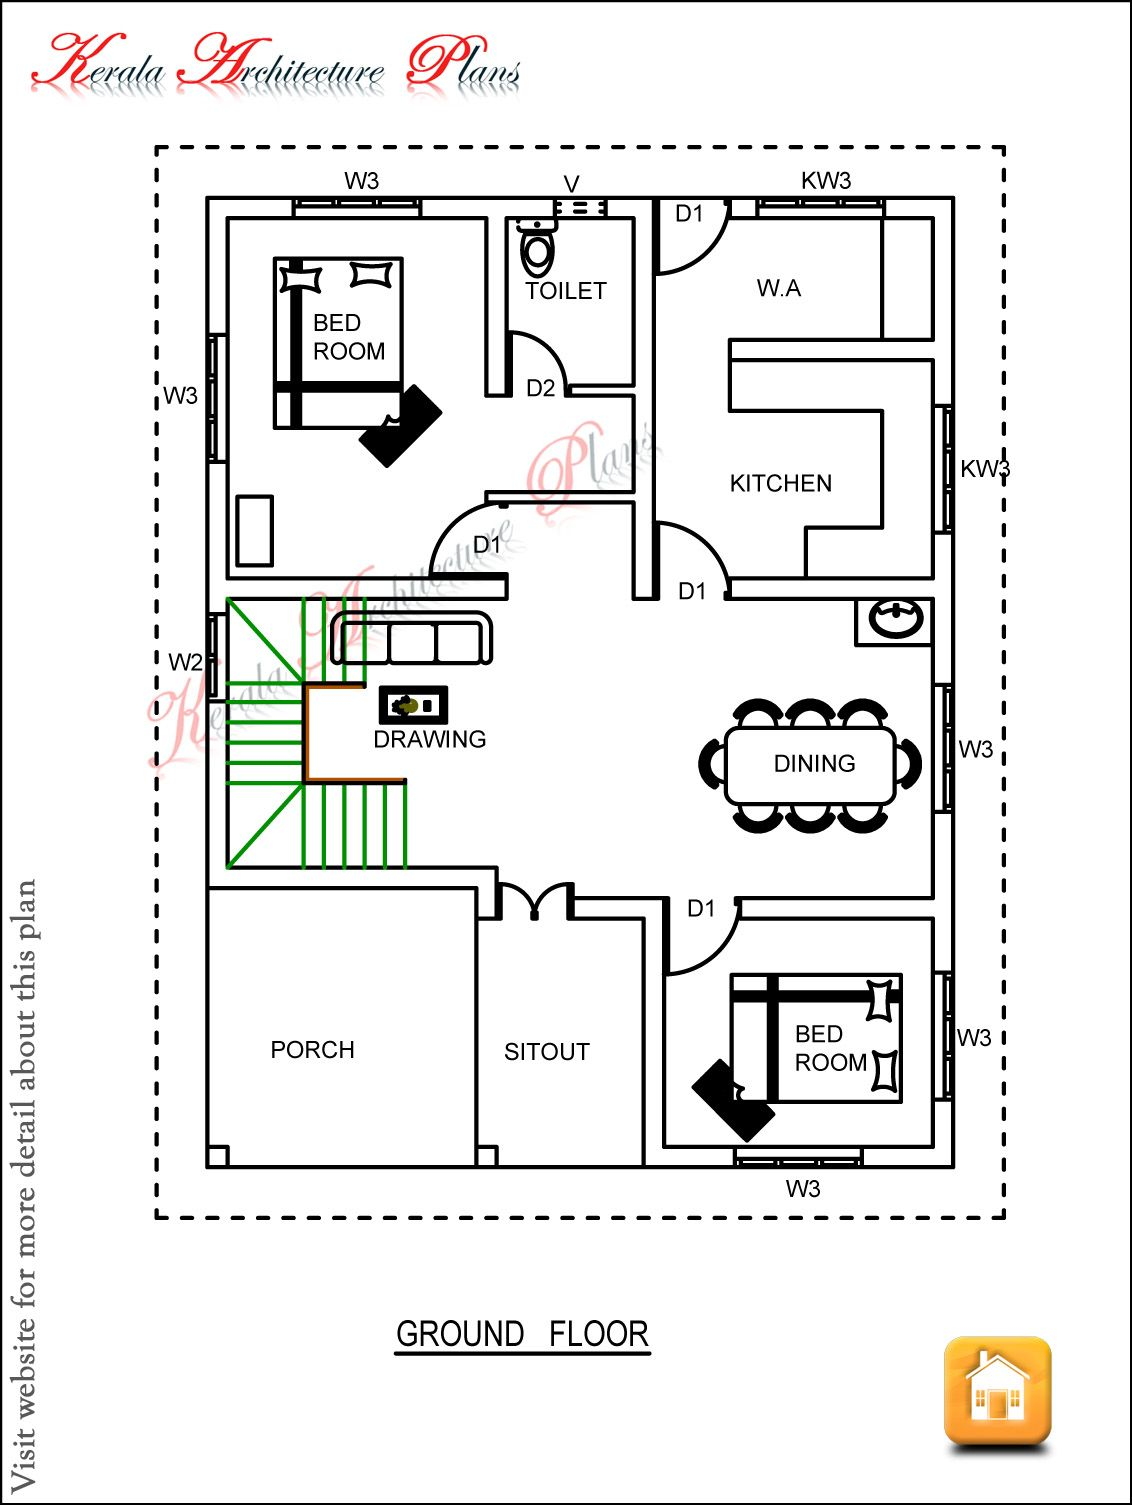 Pin by sumon haq on Small Houses | Architectural house plans ...